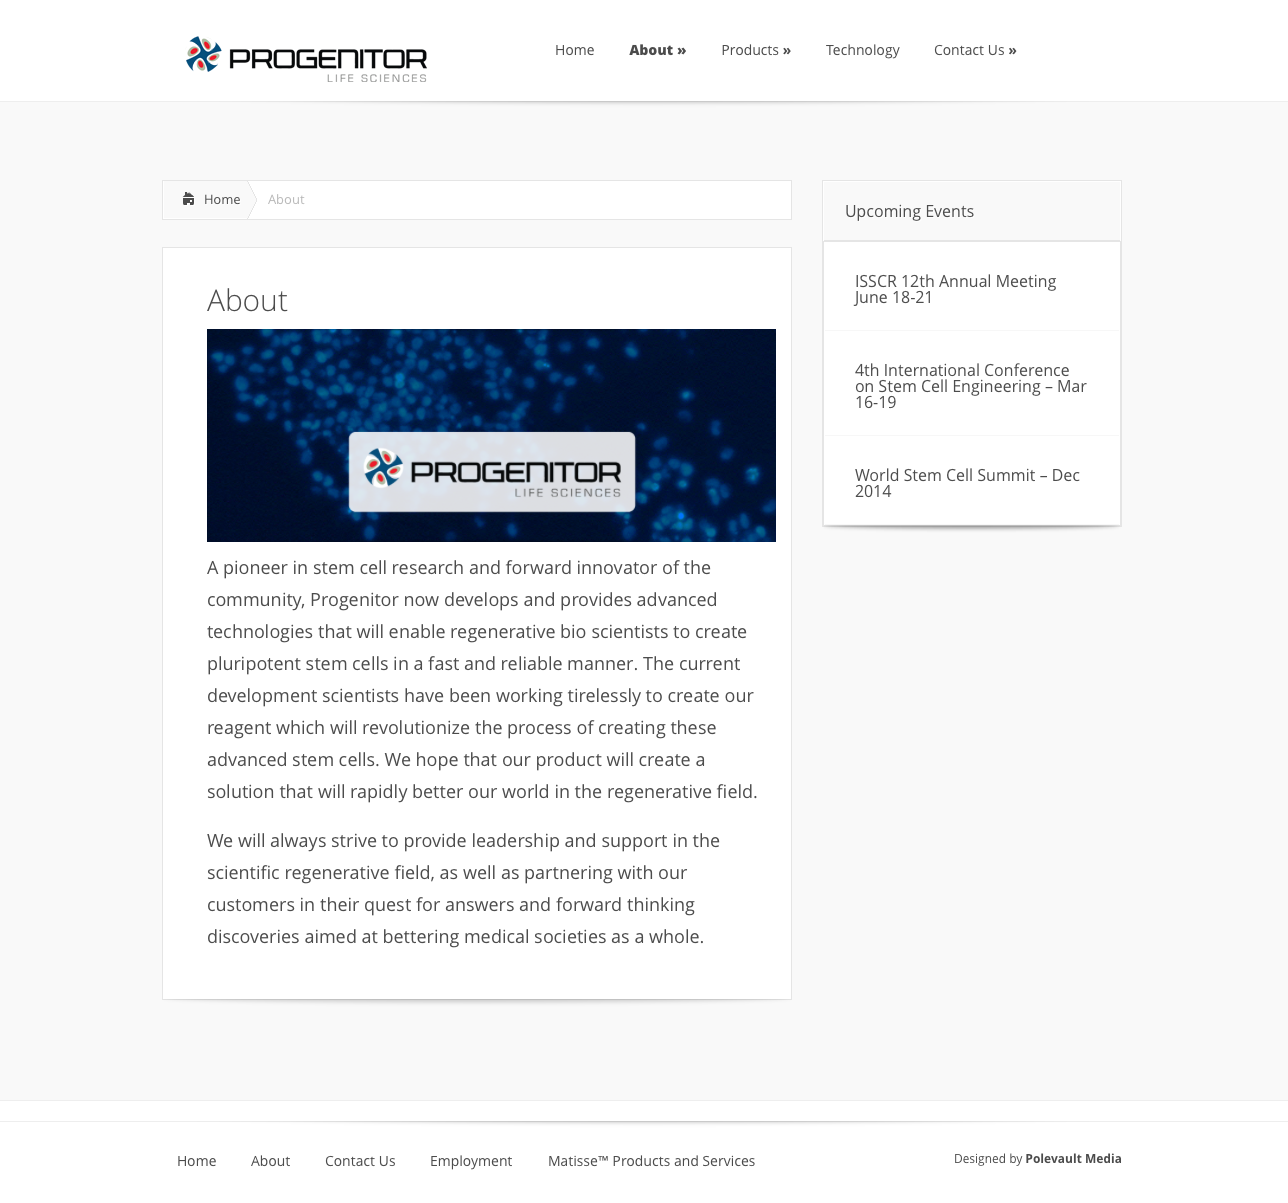 progenitor life sciences ABOUT PAGE